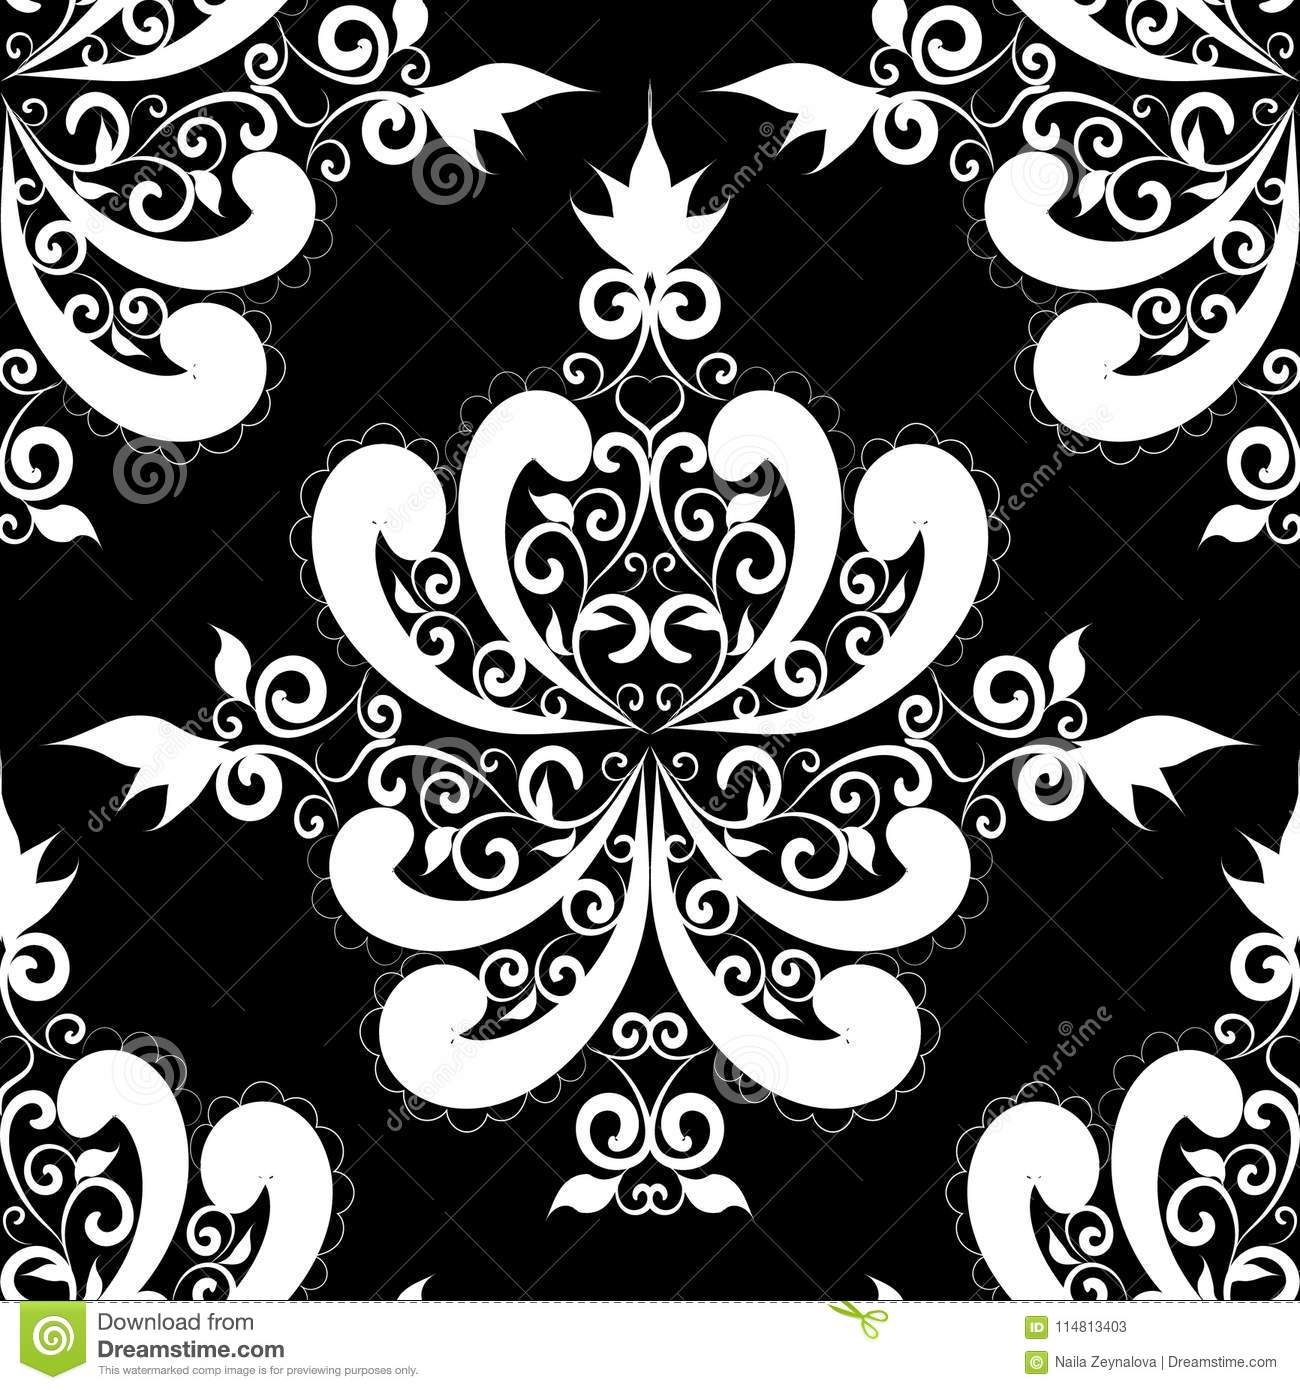 Floral Black And White Damask Seamless Pattern Vector Vintage B Background Leaves